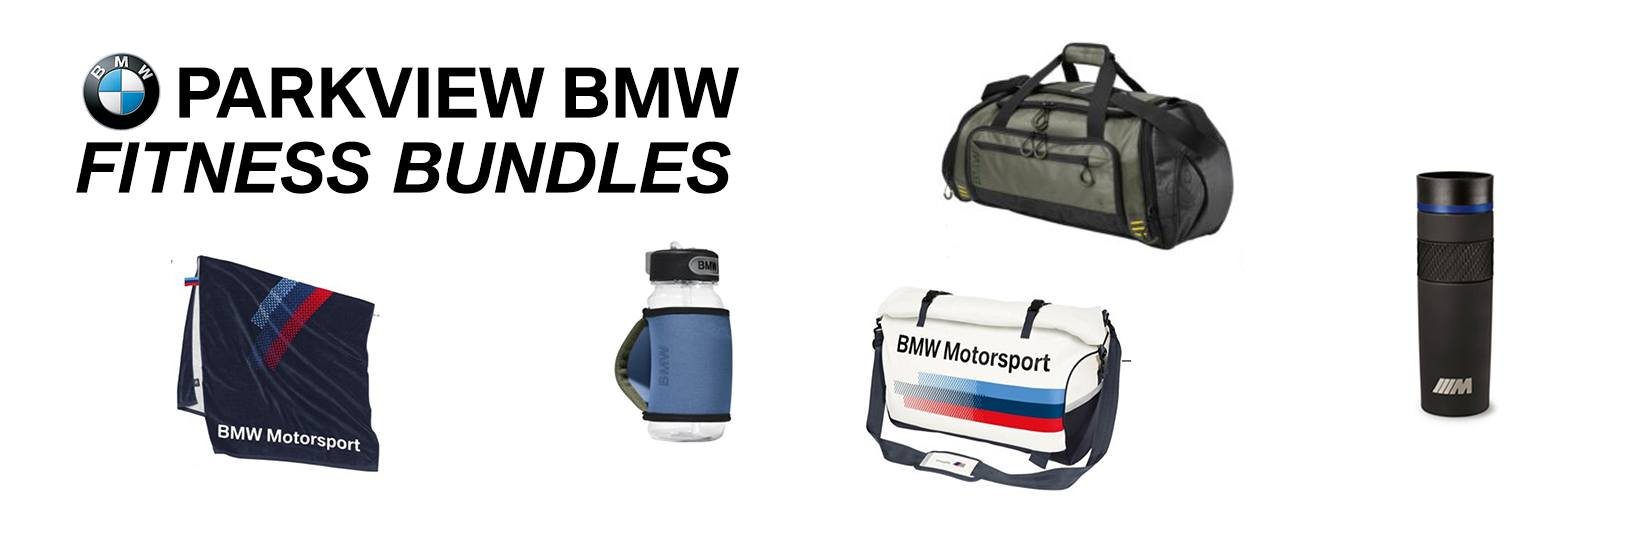 Parkview BMW Fitness Bundles